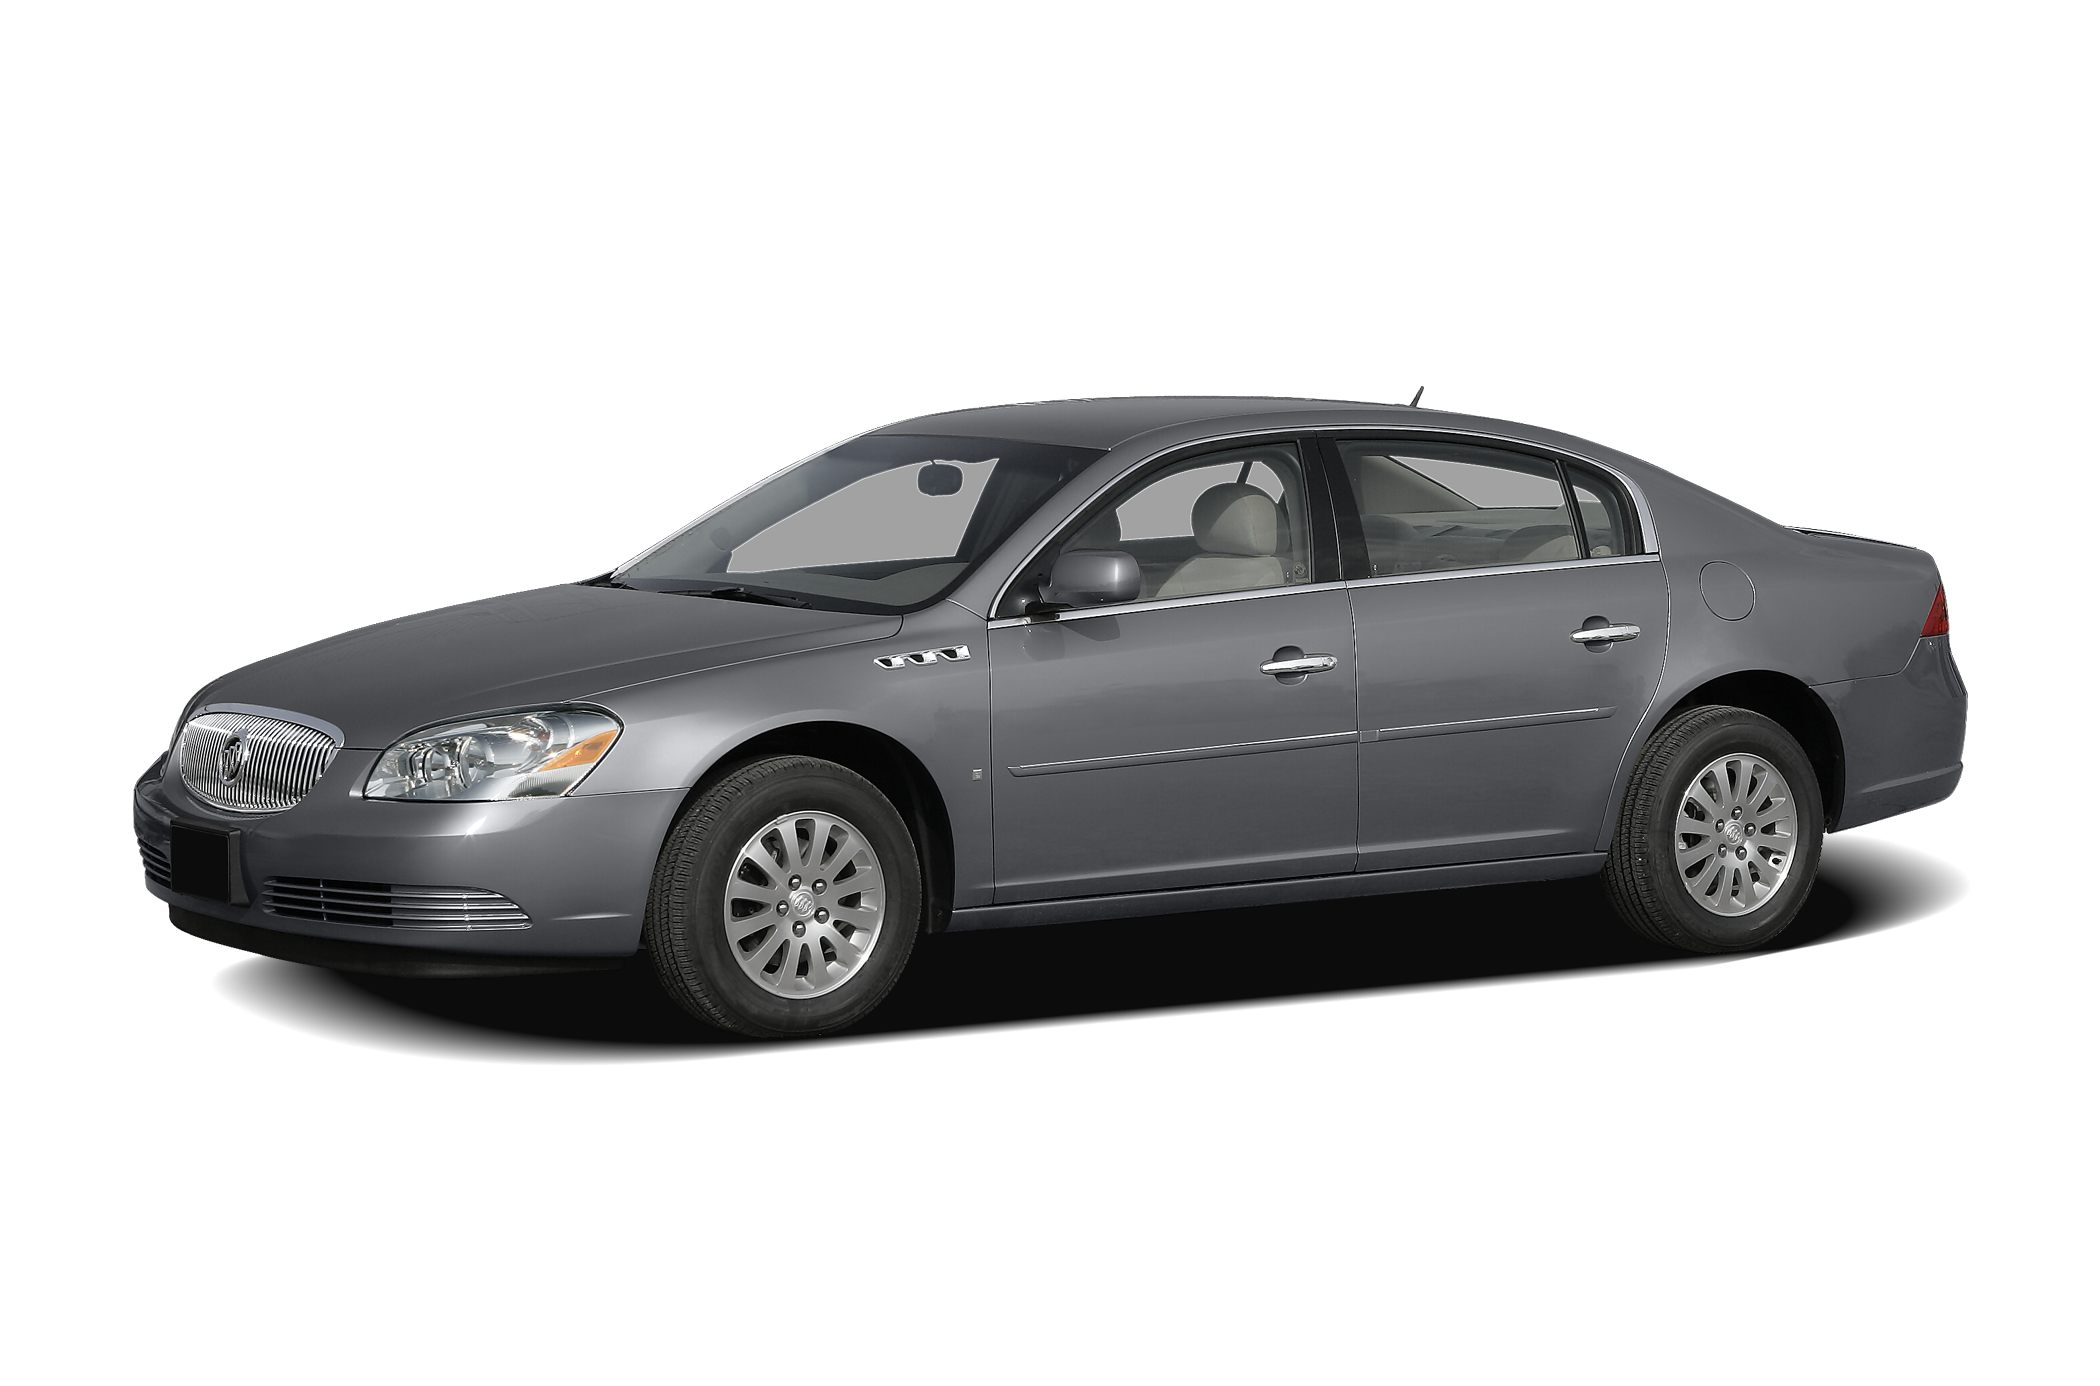 2008 Buick Lucerne CXL 4dr Sedan Trade In and Resale Values